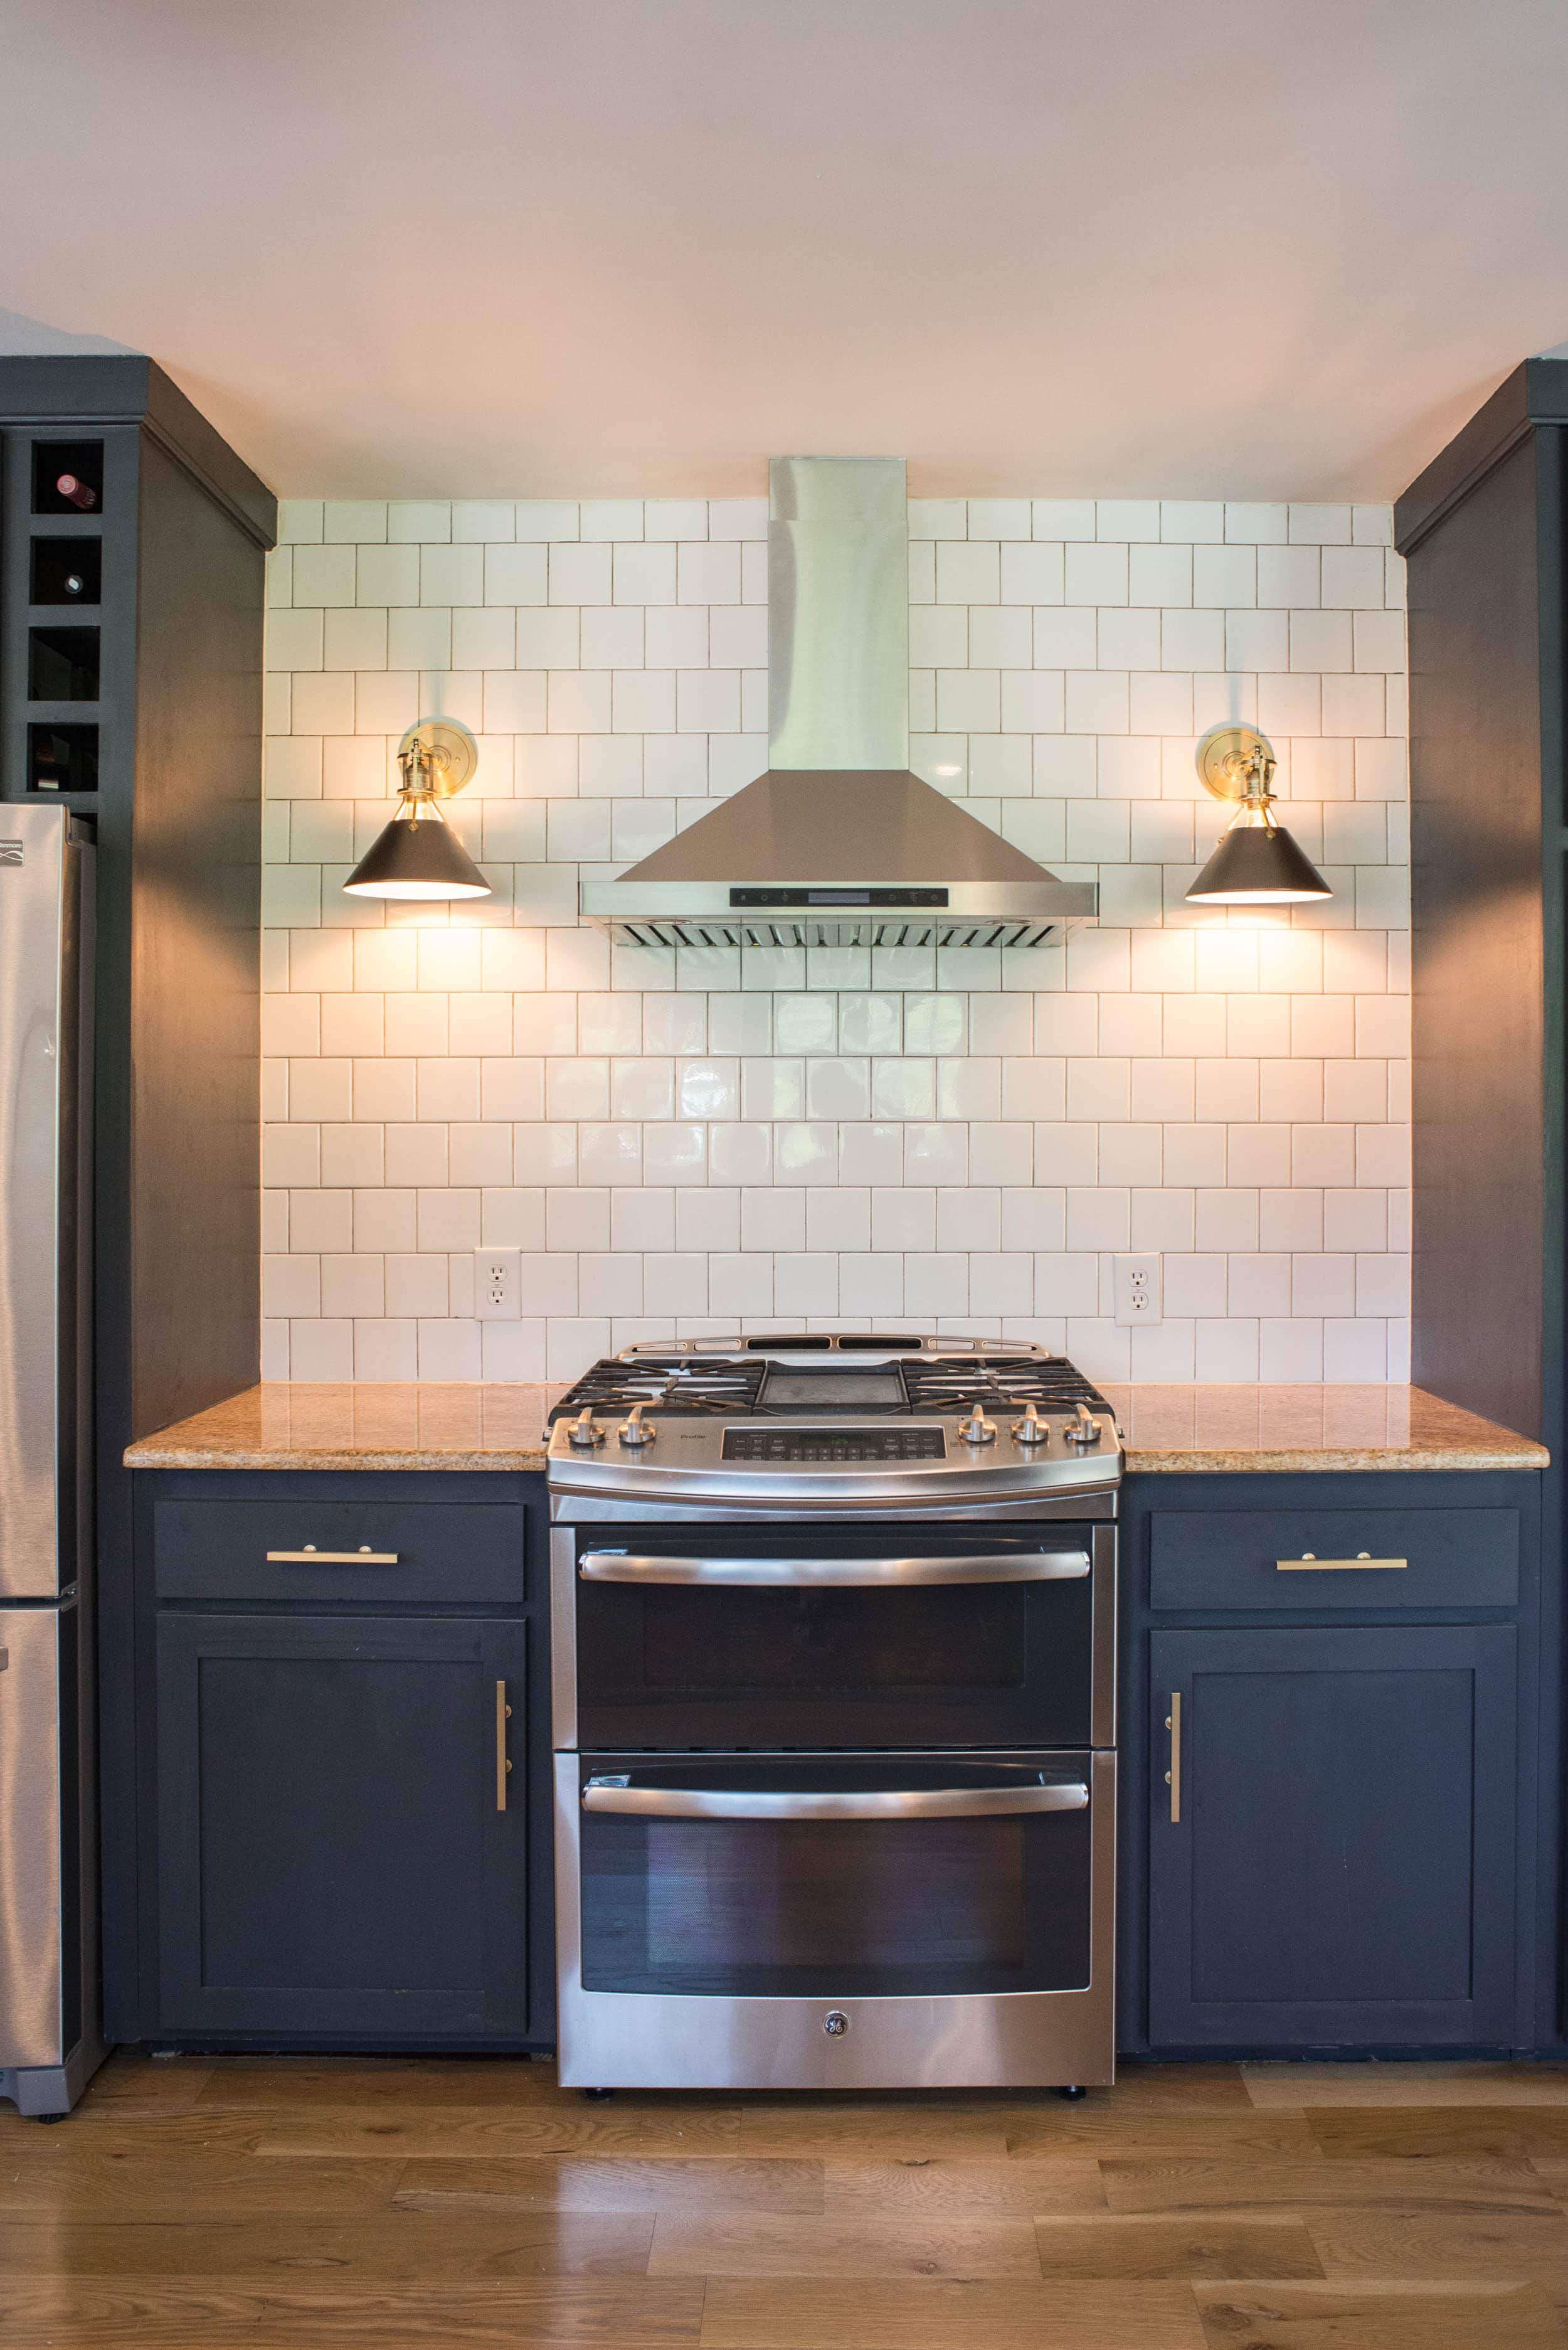 Kitchen with sconces flanking the oven